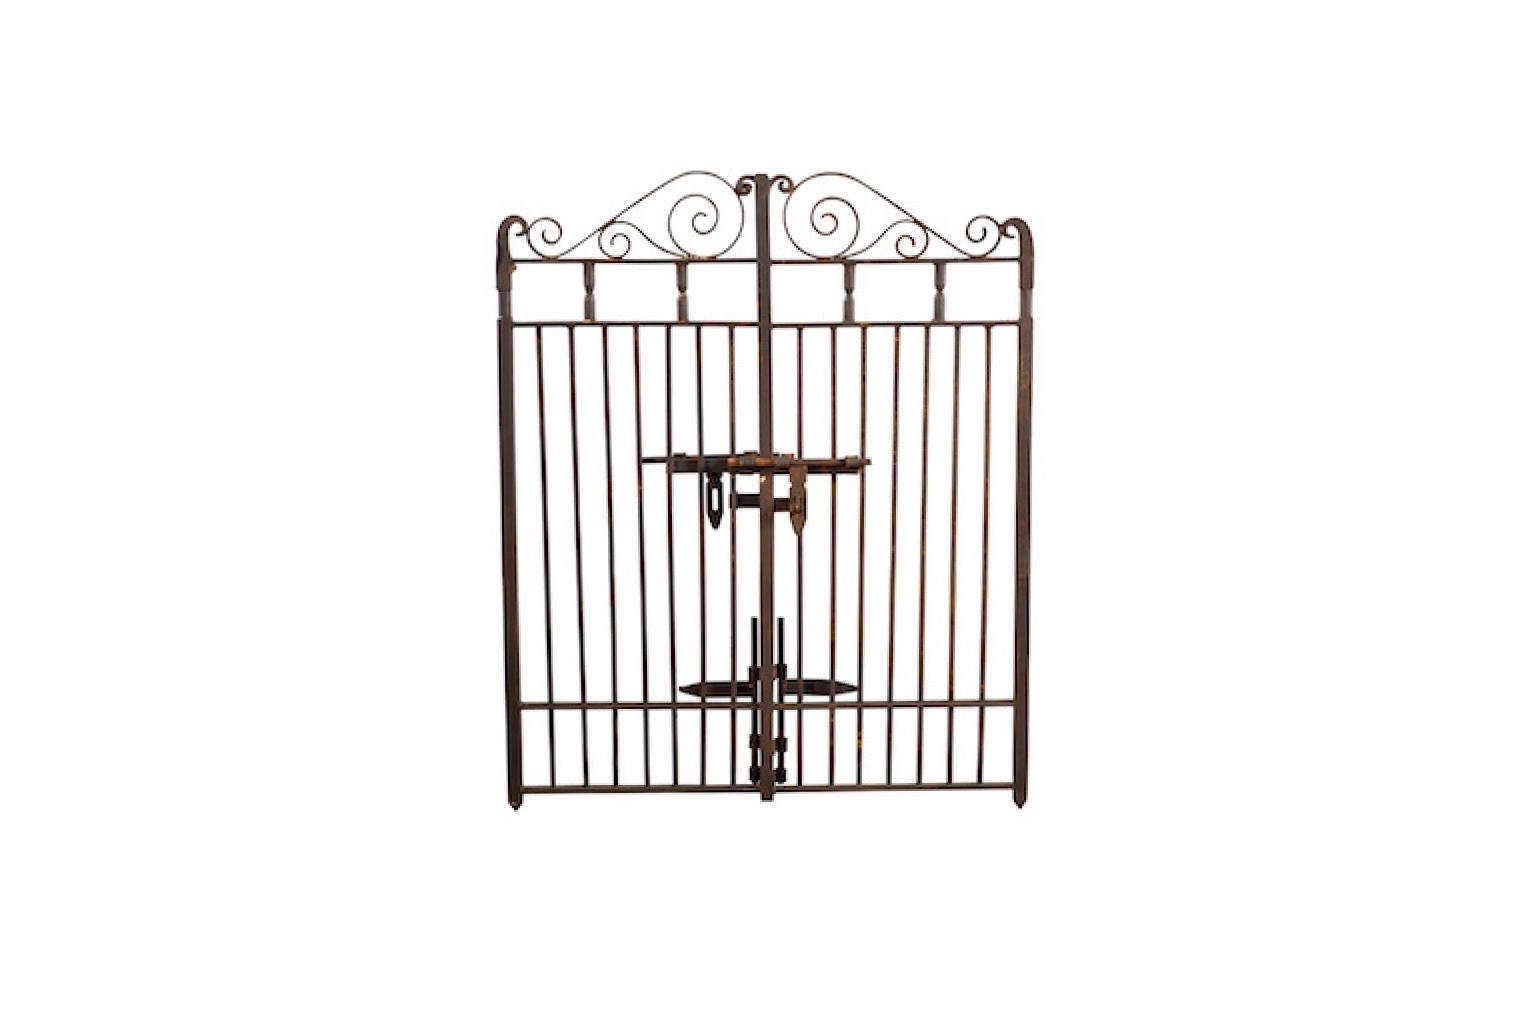 What Does Your Garden Gate Say About You? A Front Gate Announces Your  Intentions With Its Proportions, Style, And Materials. Whether Your Aim Is  Privacy, ...